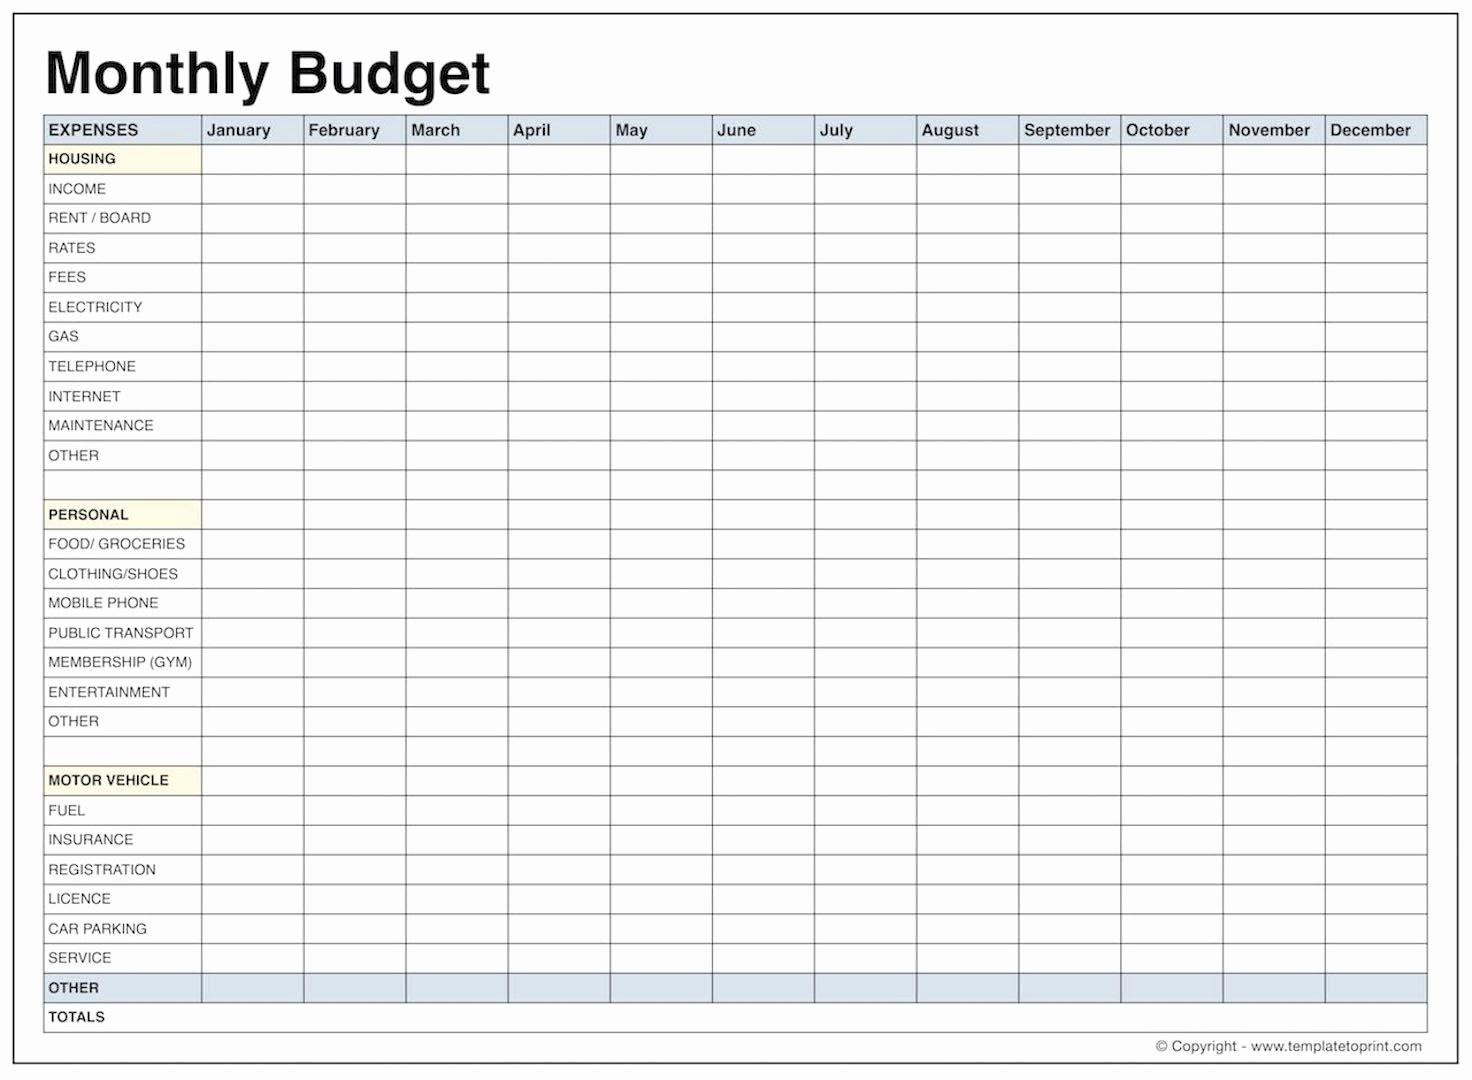 013 Printable Monthly Budget Template Free Best Of Blank Bud Pdf - Free Printable Budget Template Monthly